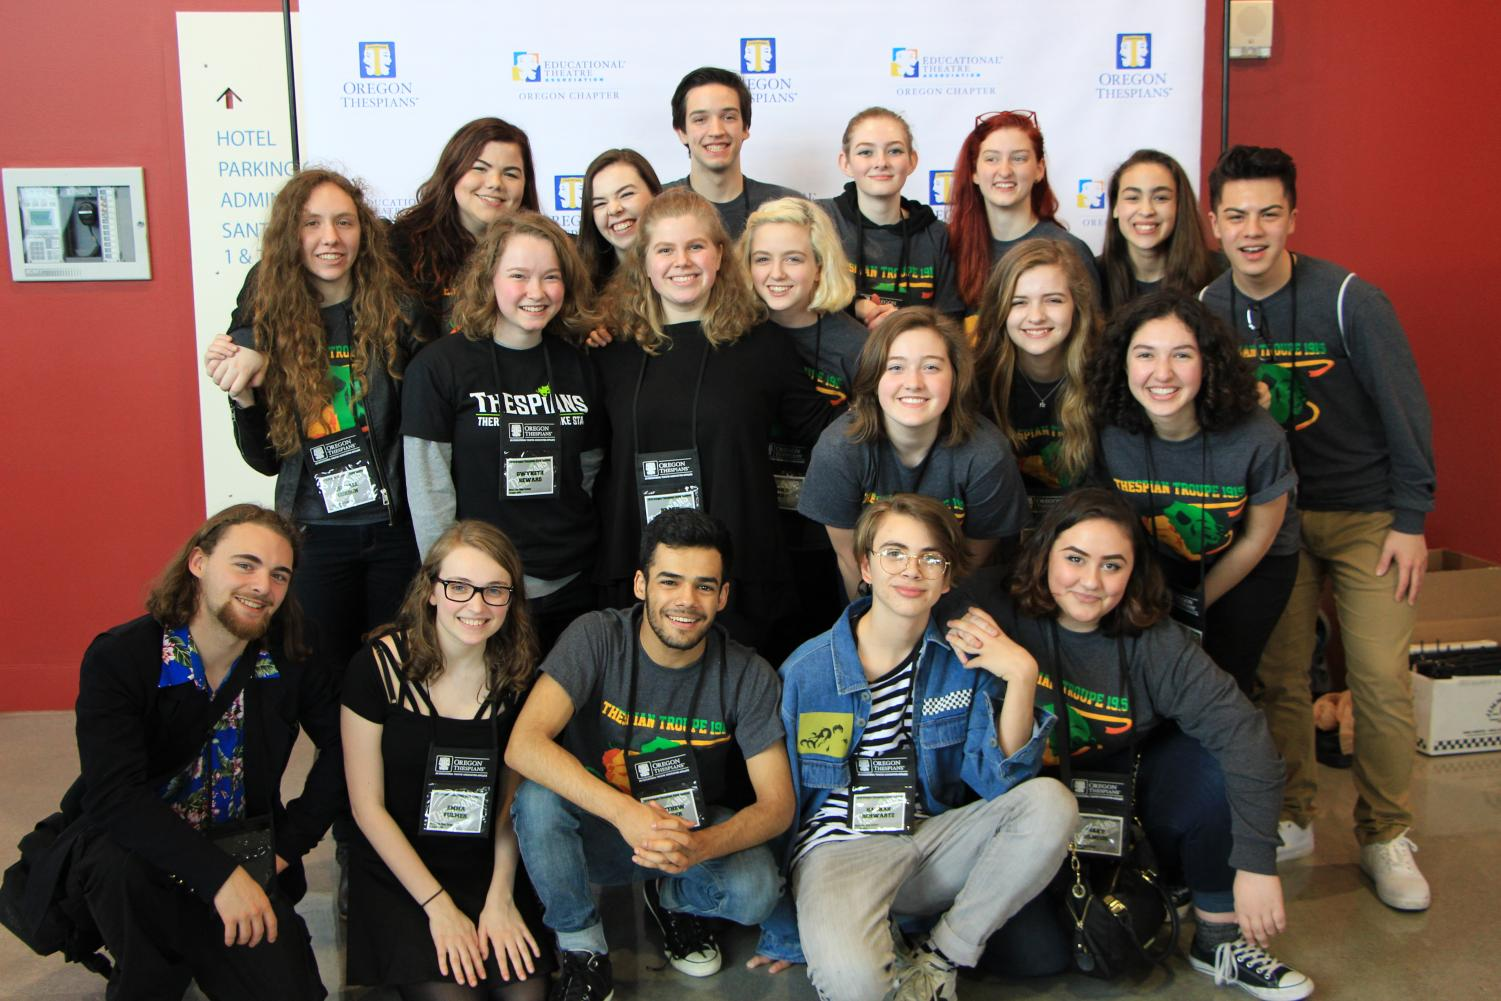 At the Thespian State Festival, Thespian Troupe 1915 was well represented in a variety of categories. By the end of the weekend, seven awards were handed out to the Troupe along with many lasting memories.